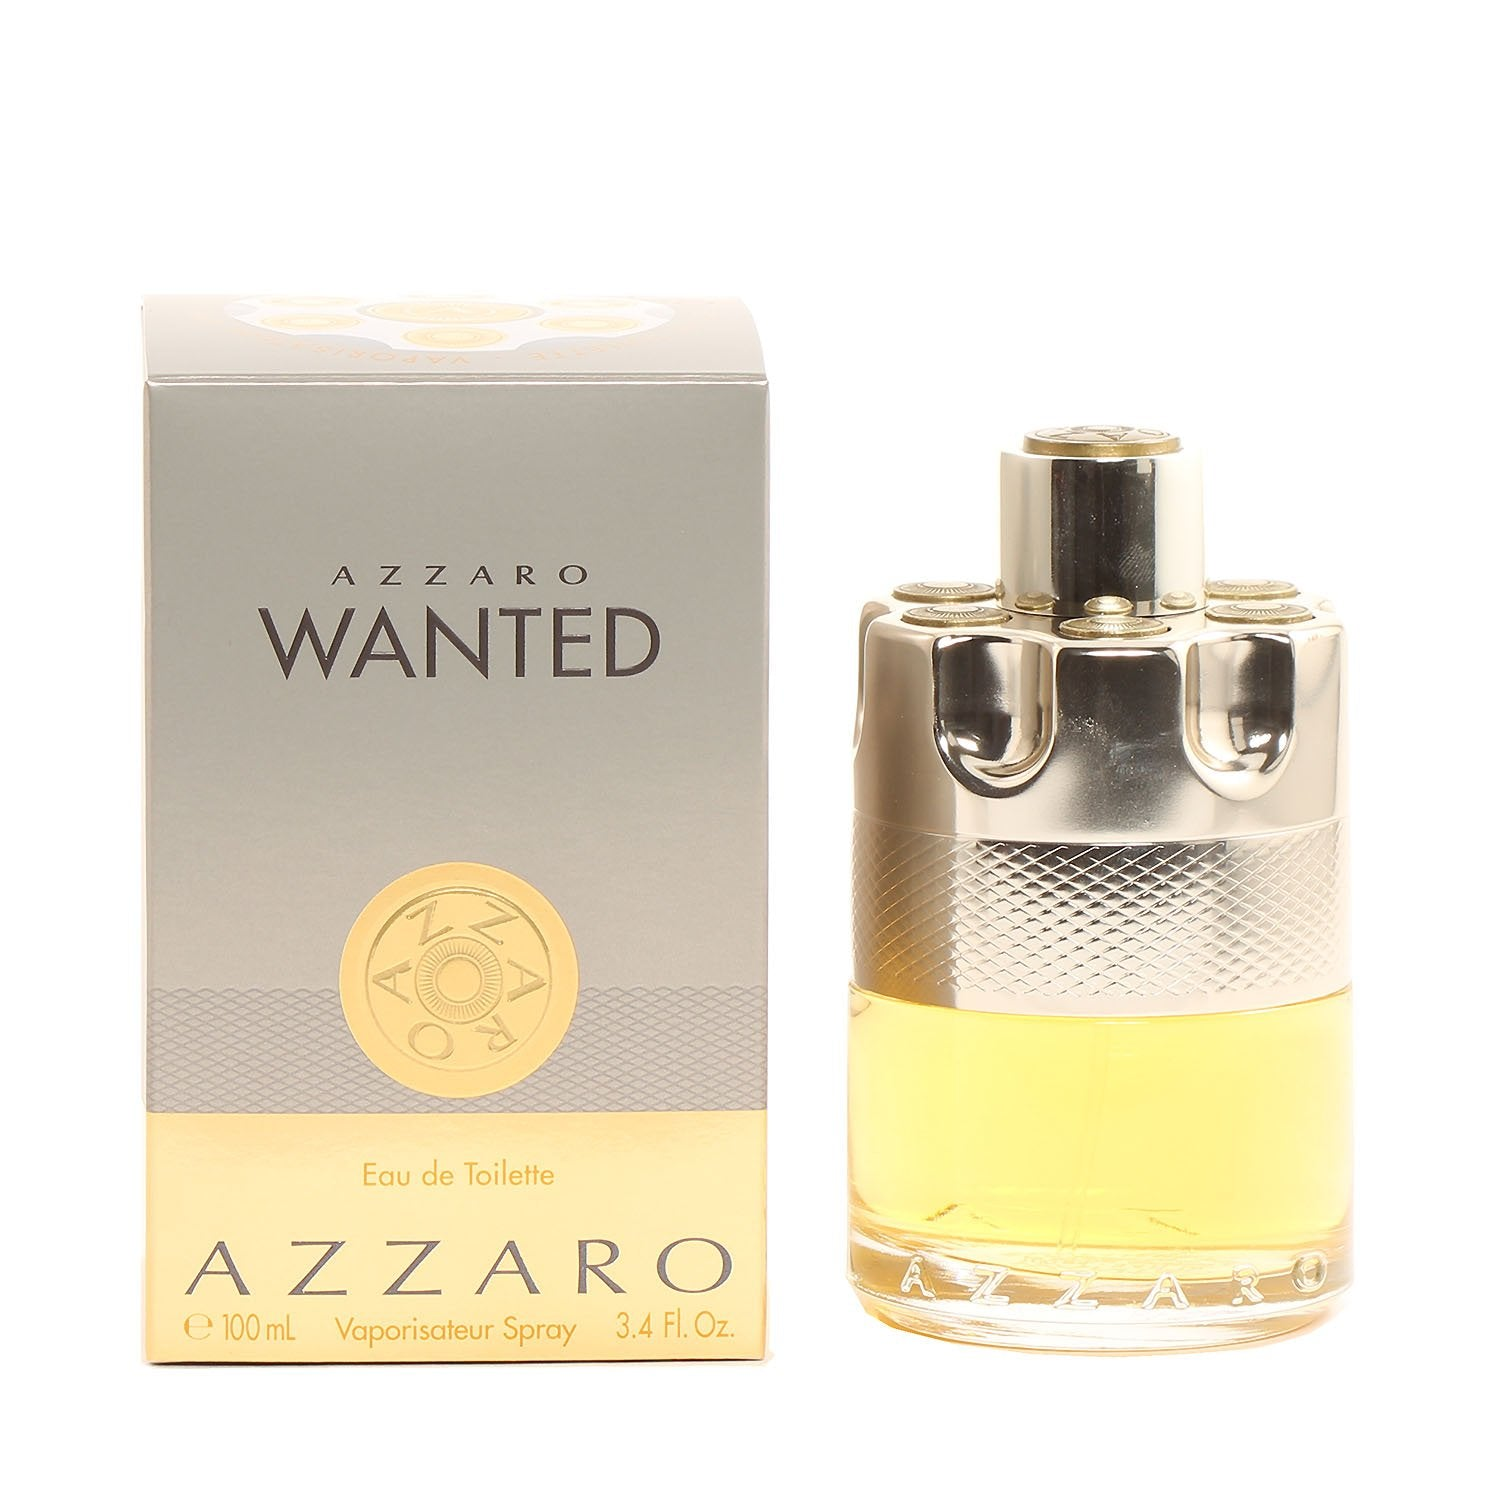 Cologne - AZZARO WANTED FOR MEN - EAU DE TOILETTE SPRAY, 3.4 OZ